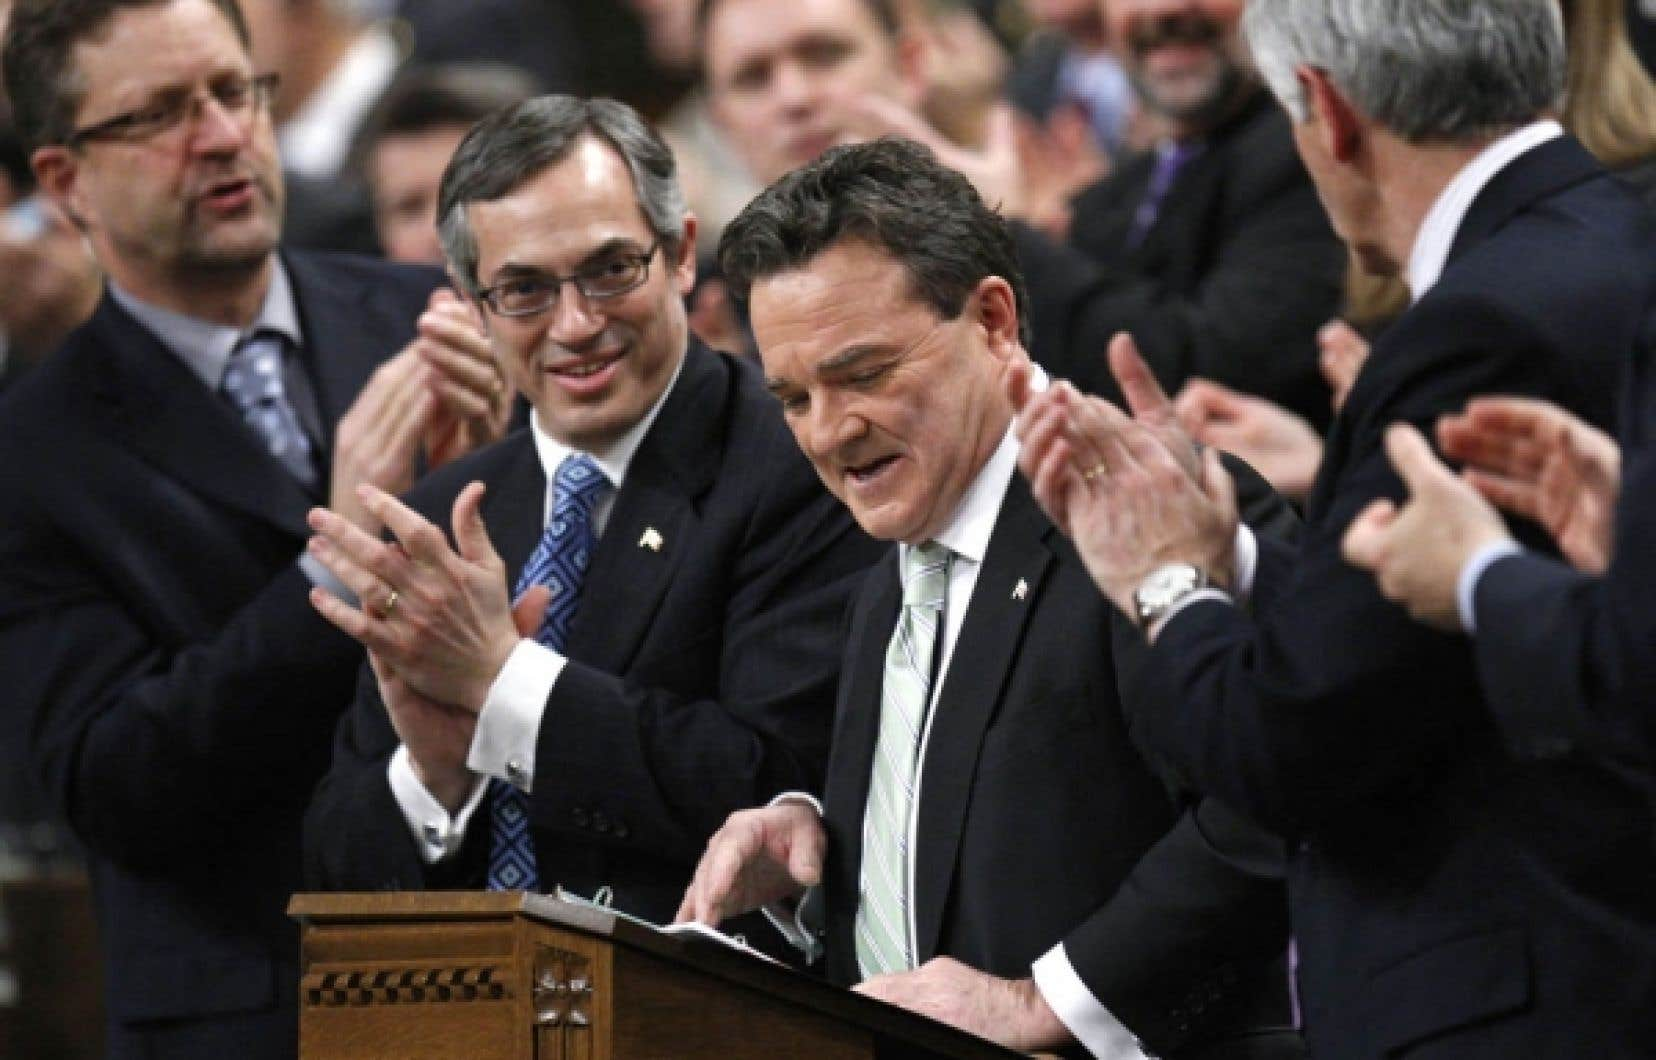 Les élus conservateurs applaudissent le ministre des Finances, Jim Flaherty.